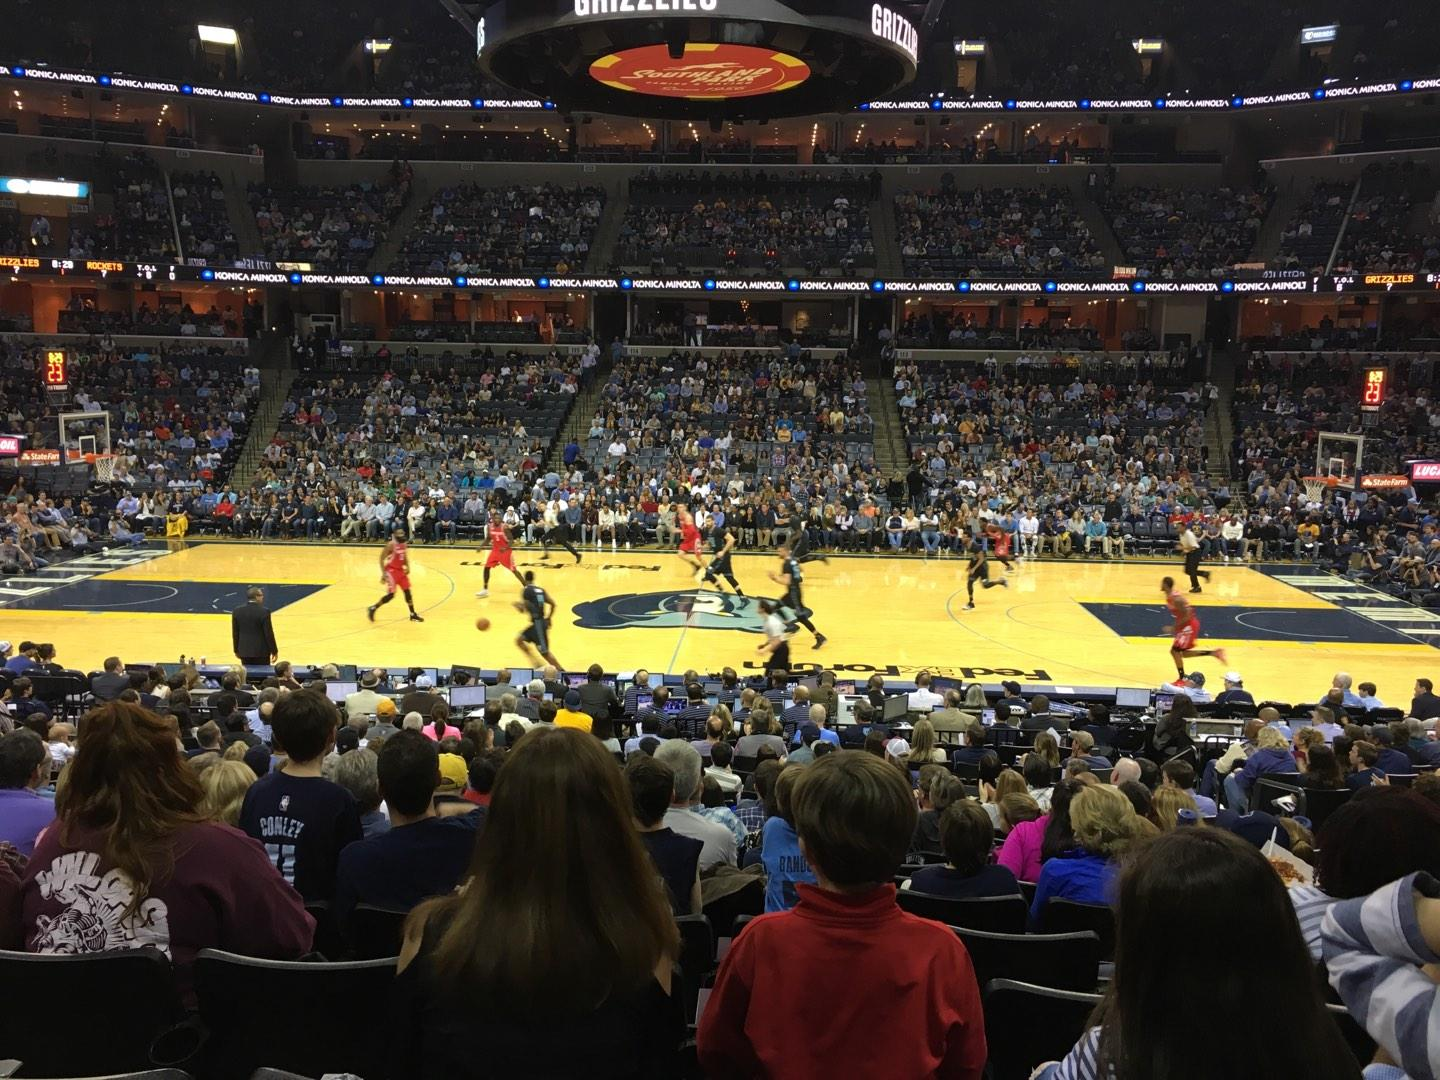 FedEx Forum Section 105 Row T Seat 7